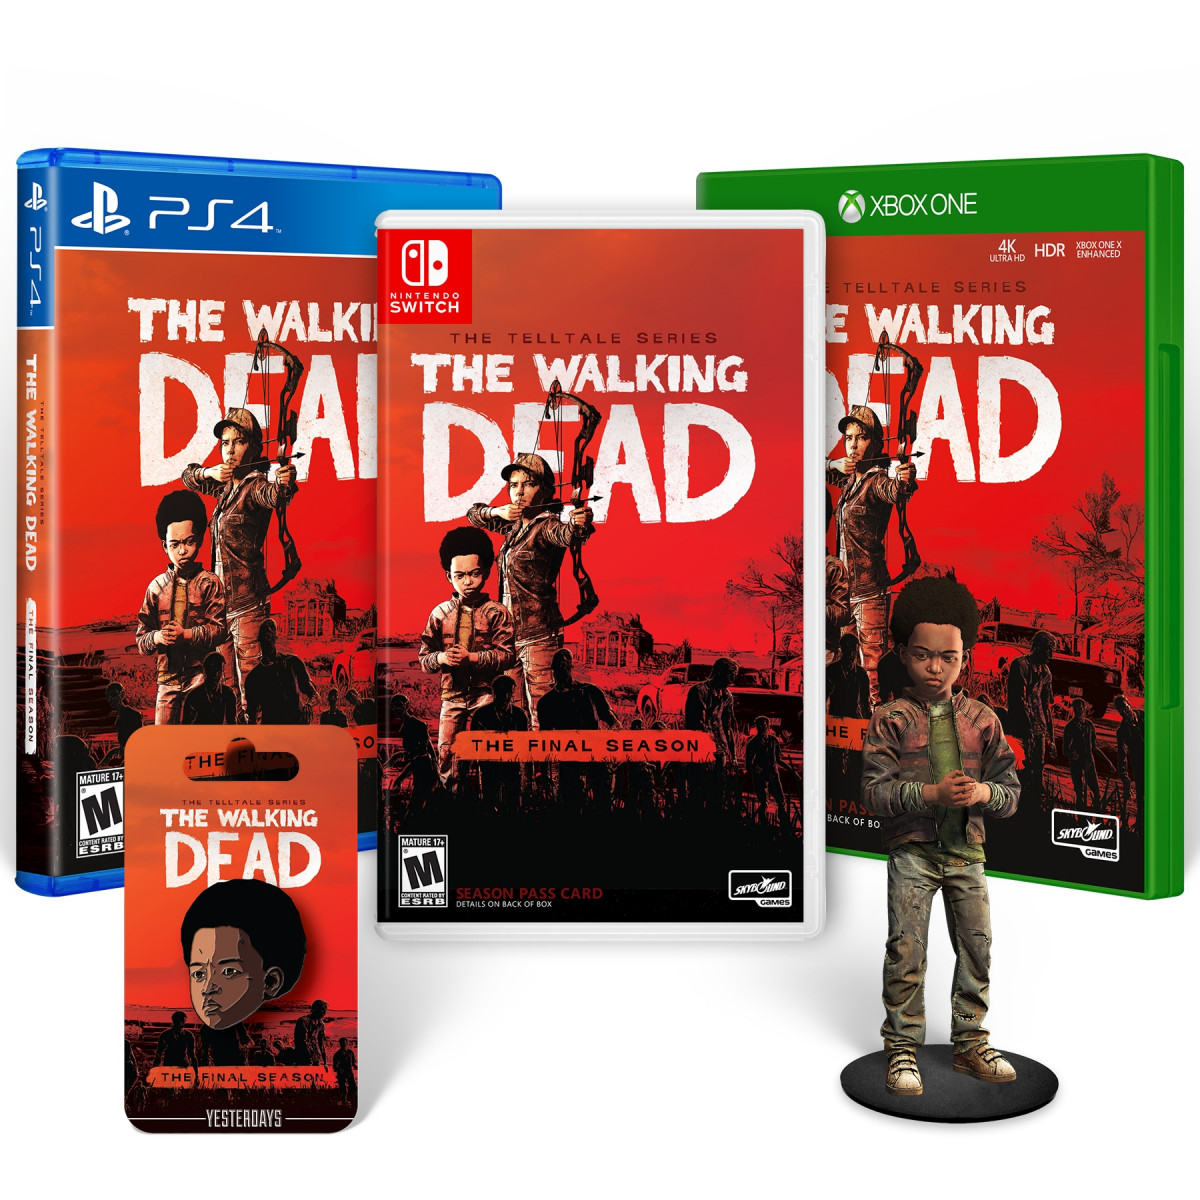 The Walking Dead The Final Season: Collector's Pack